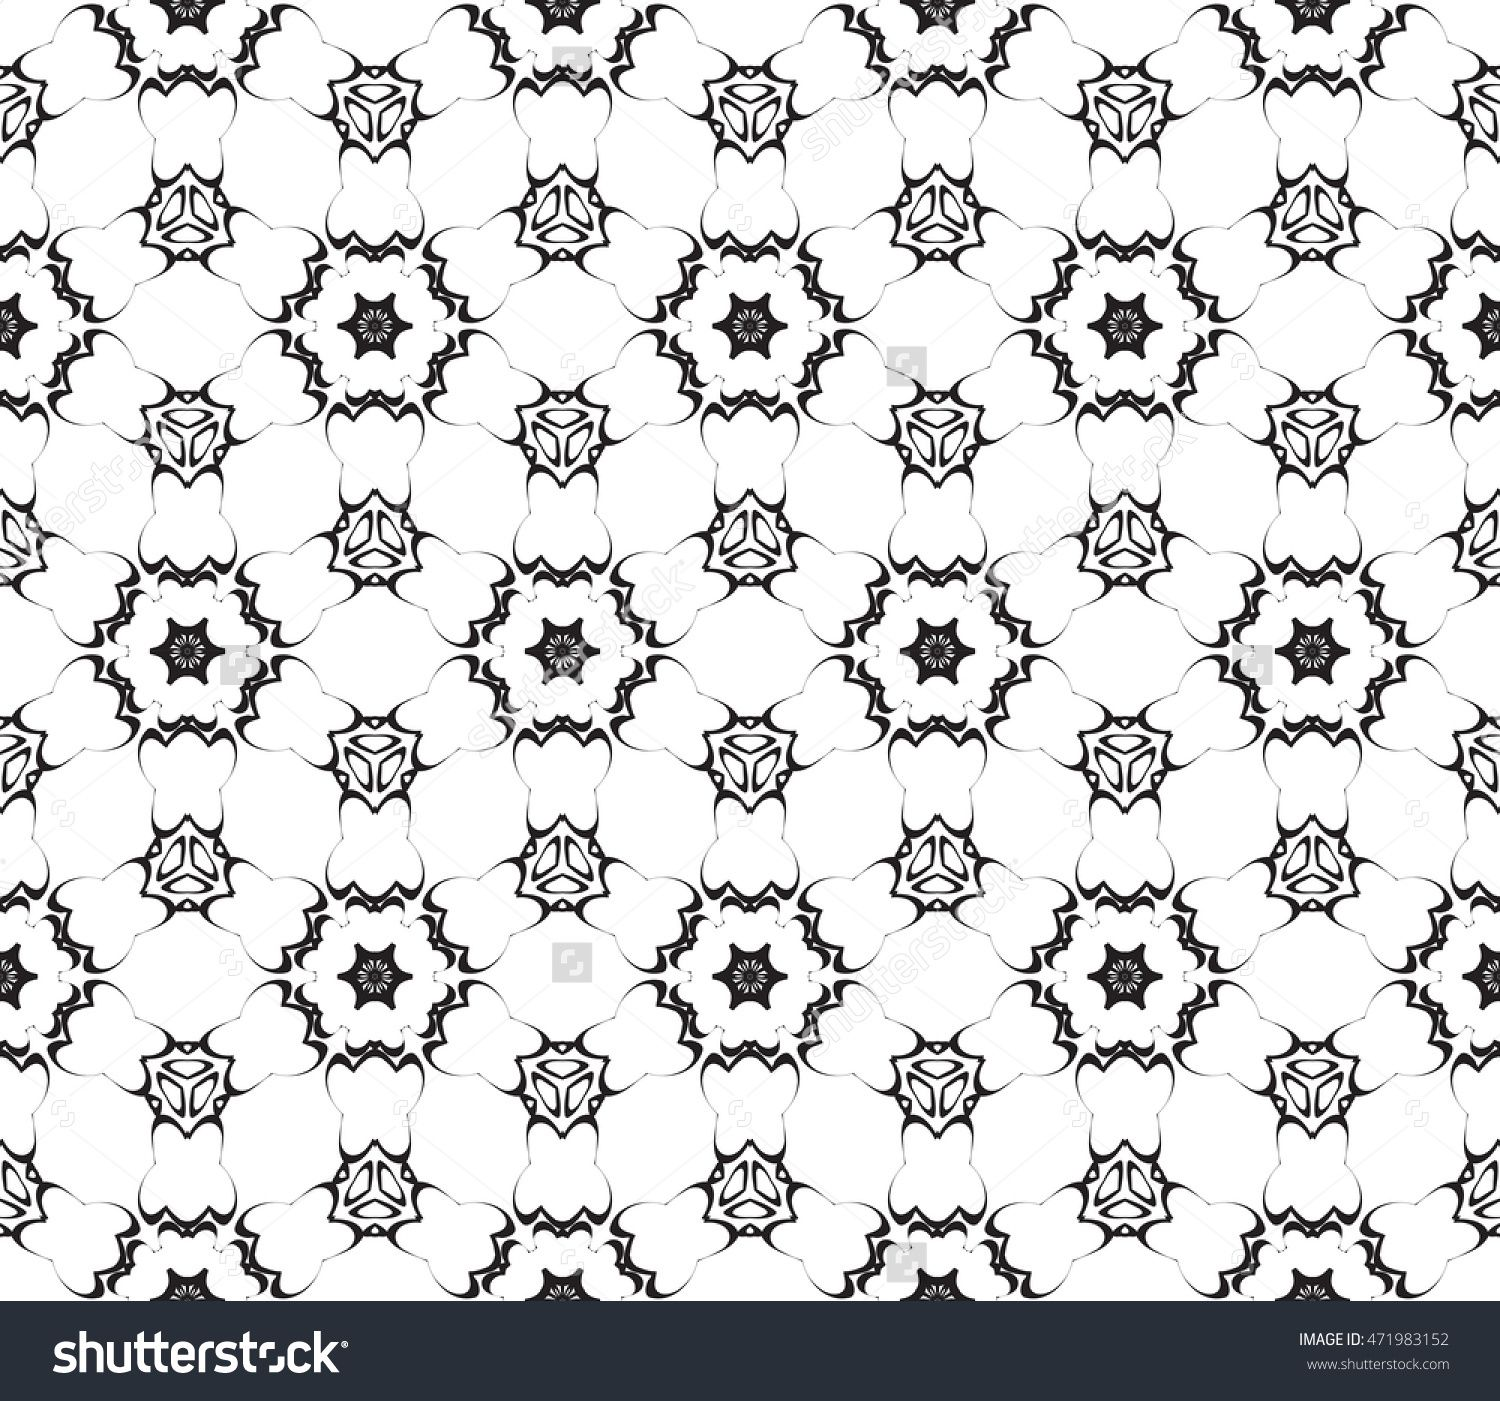 Black and white abstract illustration of a seamless pattern of